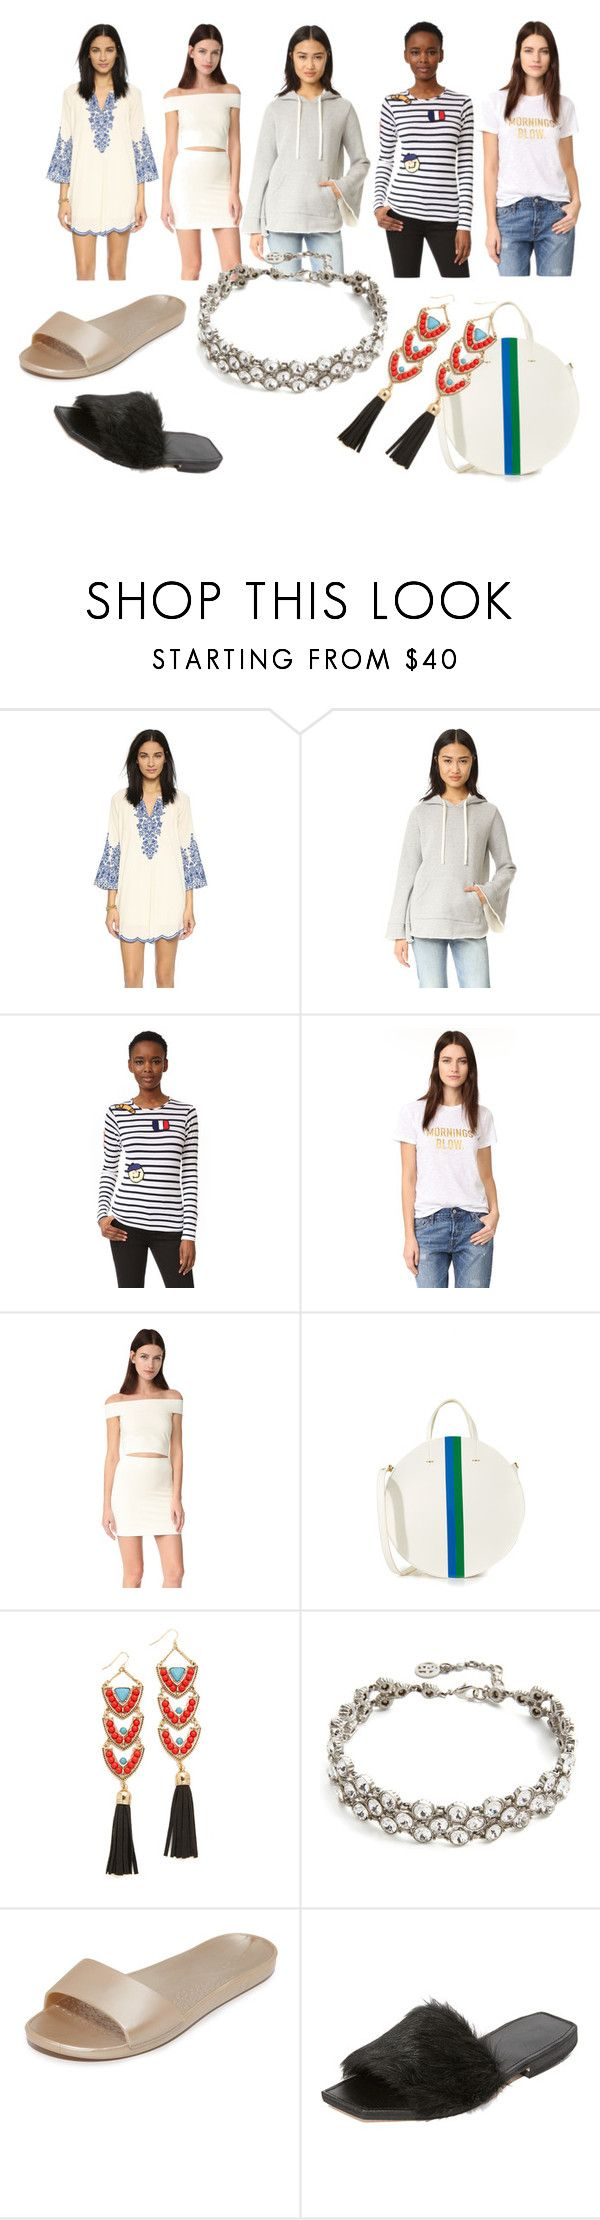 """""""summer special"""" by monica022 ❤ liked on Polyvore featuring Love Sam, Clu, Michaela Buerger, Drybar, Clare V., Adia Kibur, Ben-Amun, Soak, Parme Marin and vintage"""